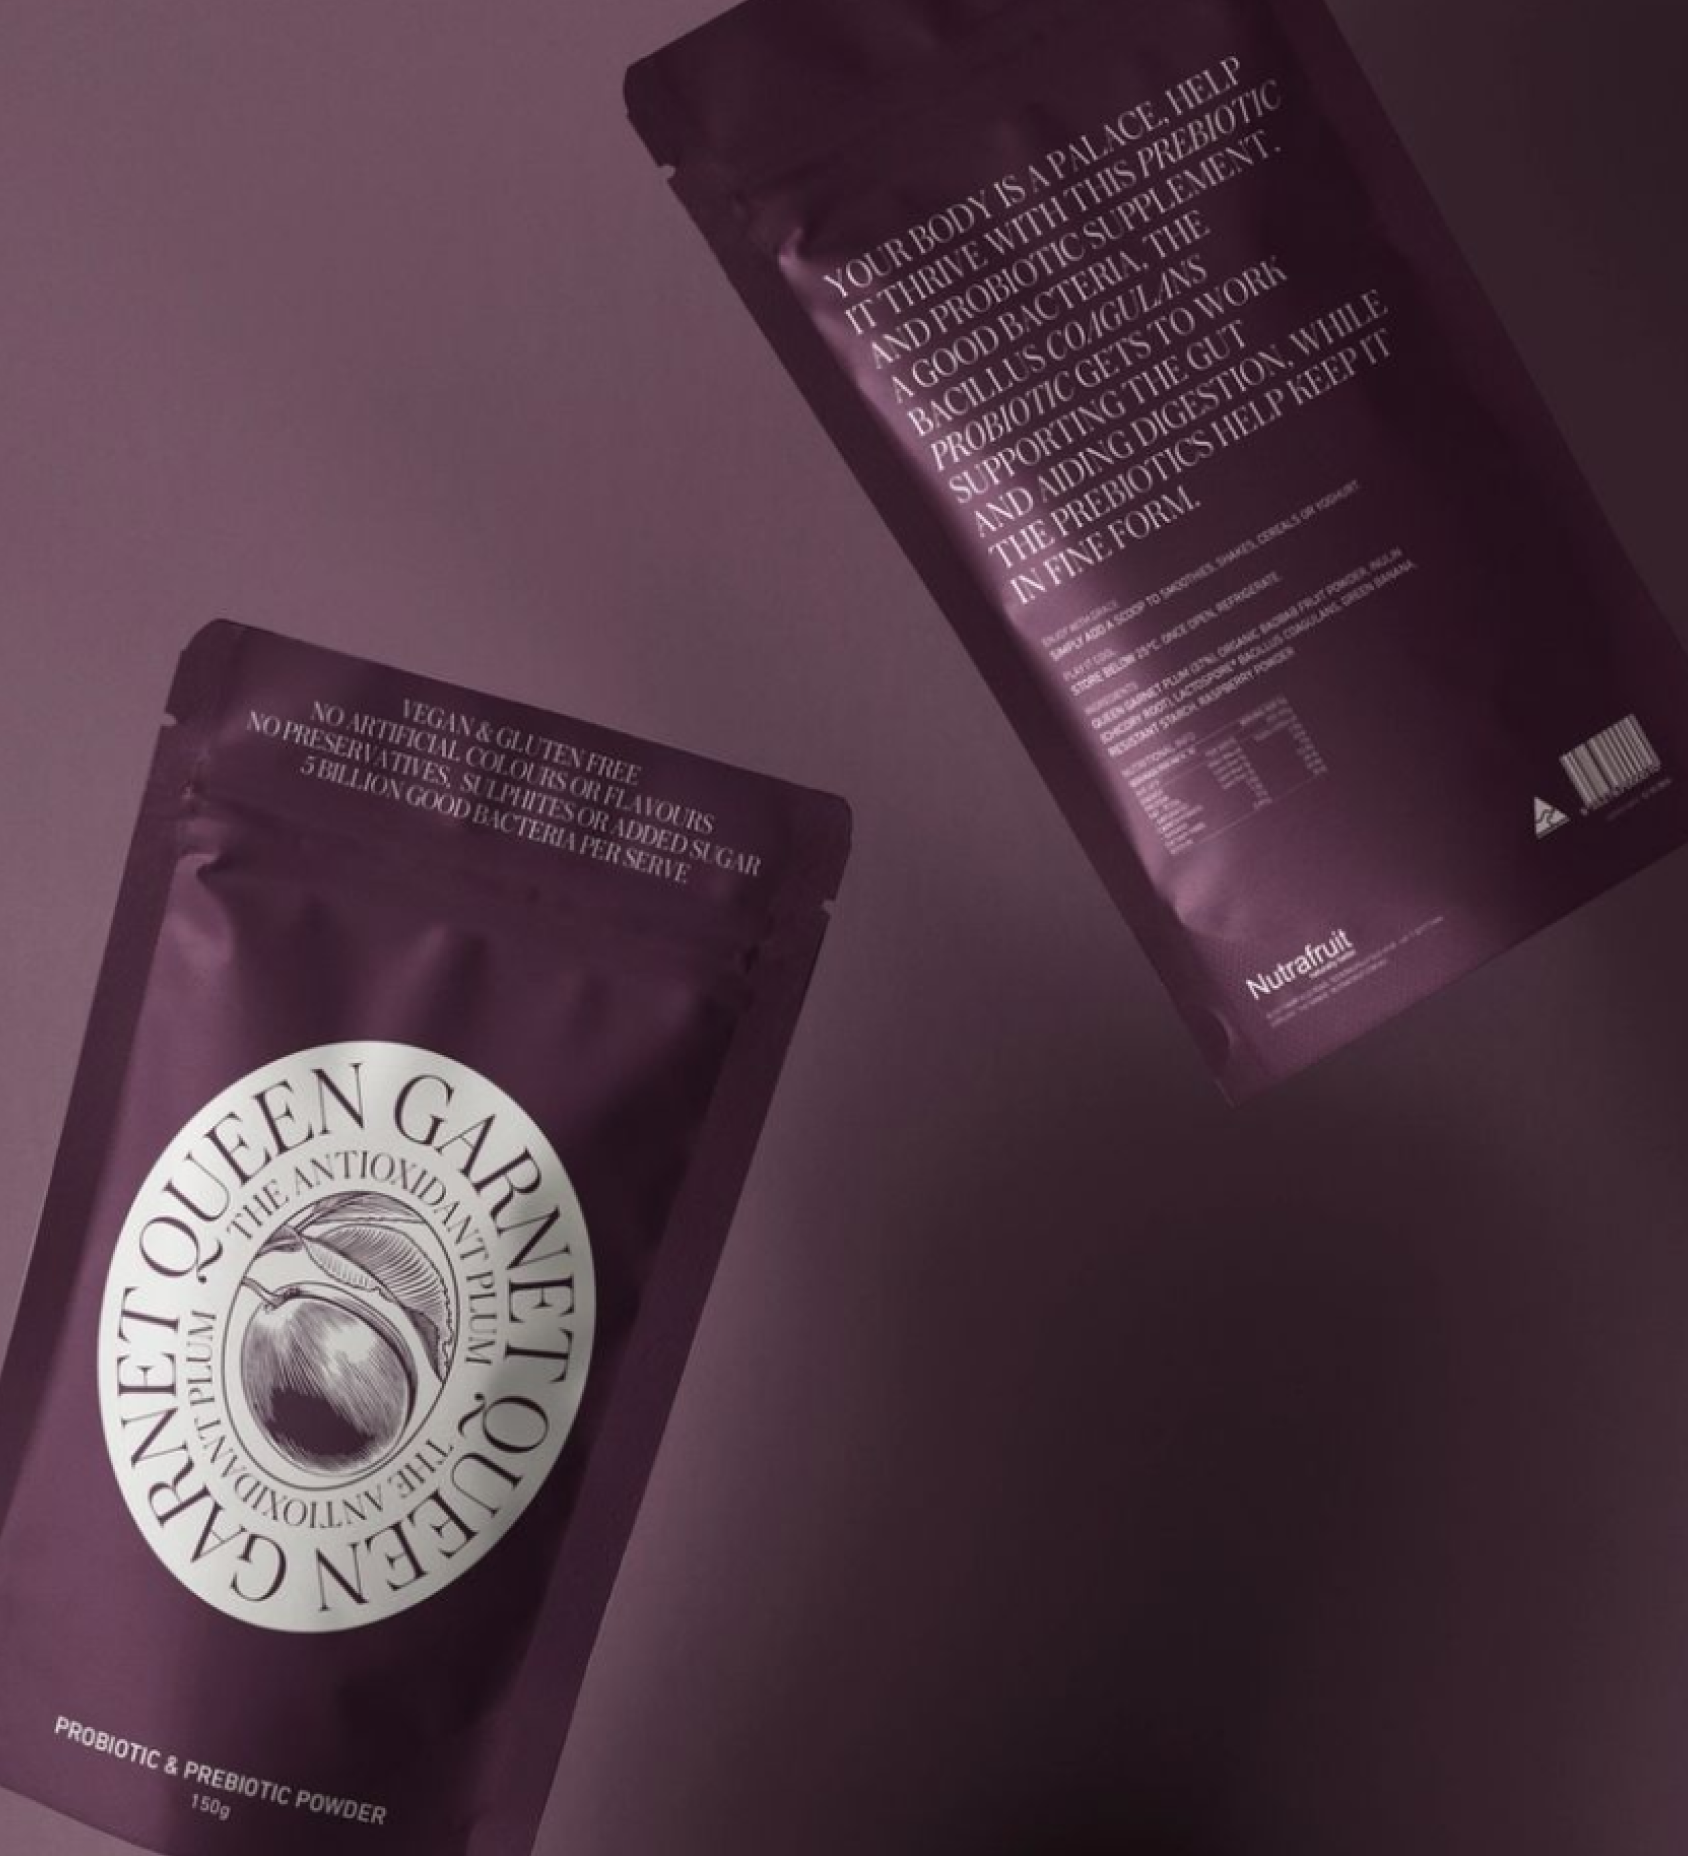 Queen Garnet powder sachets falling, showing both front and back views